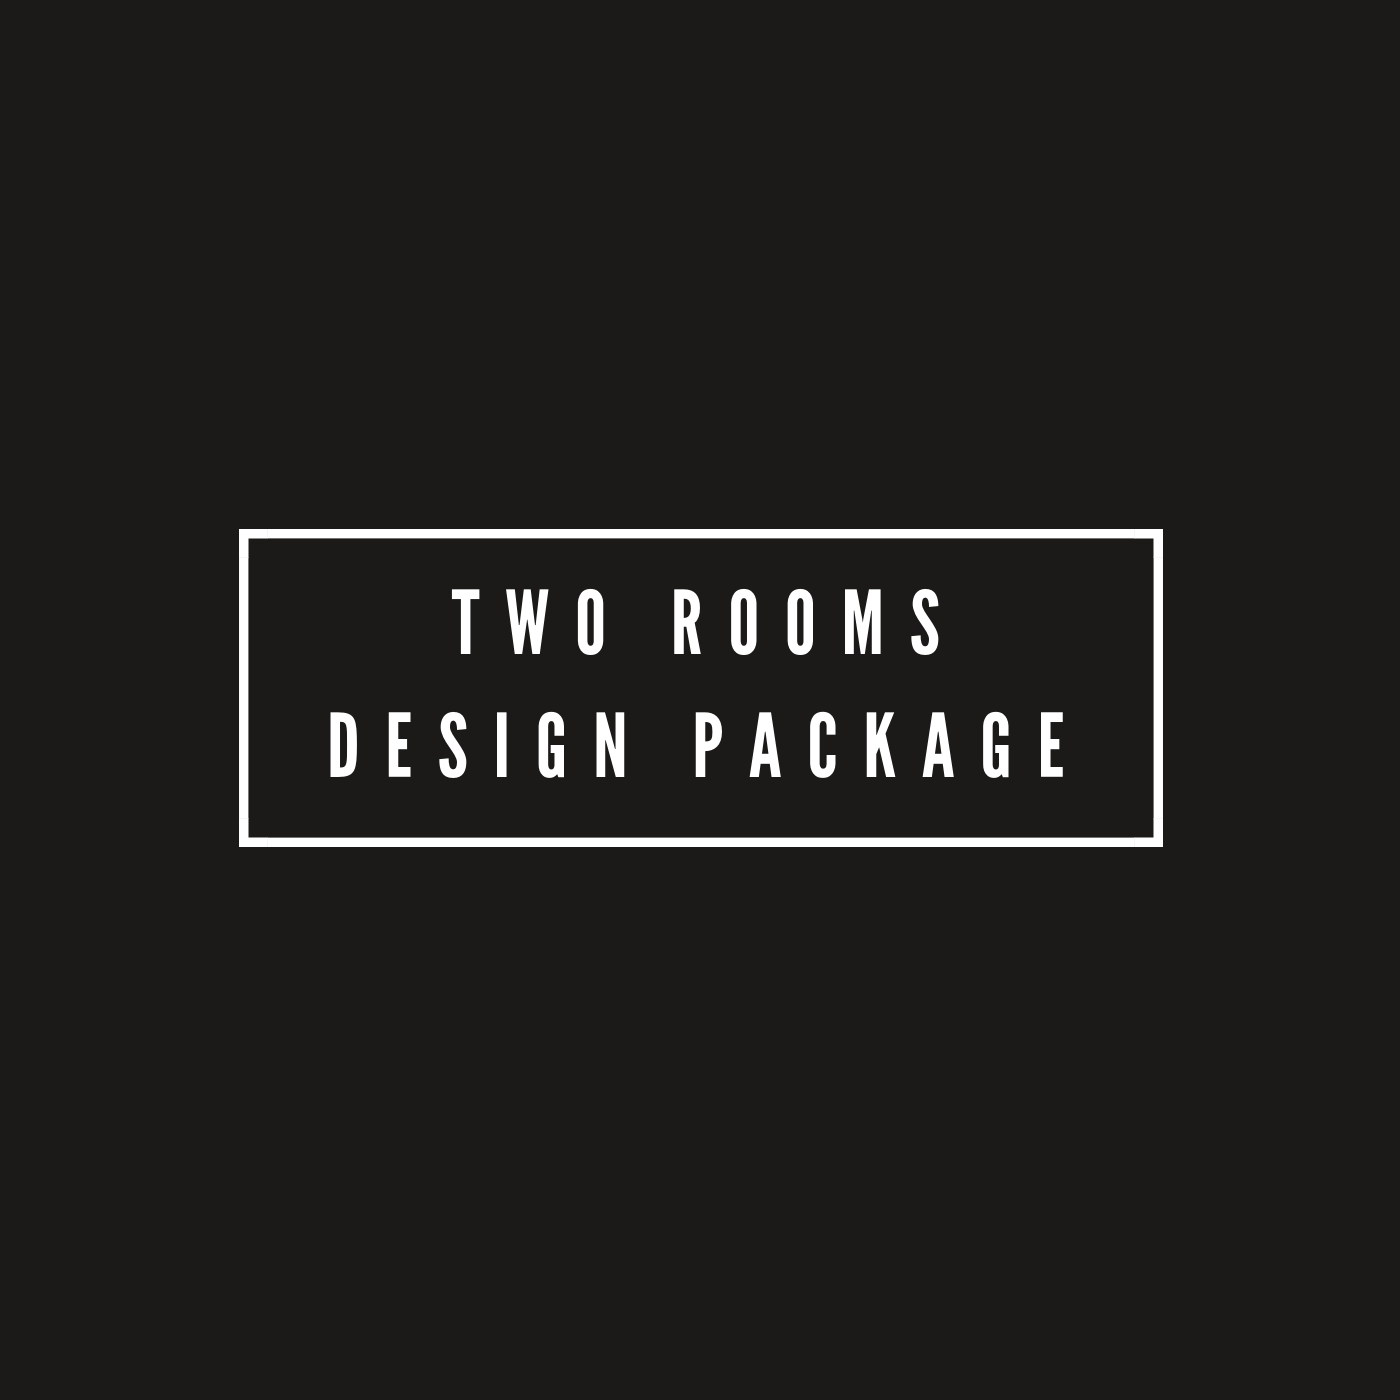 two rooms design package.jpg